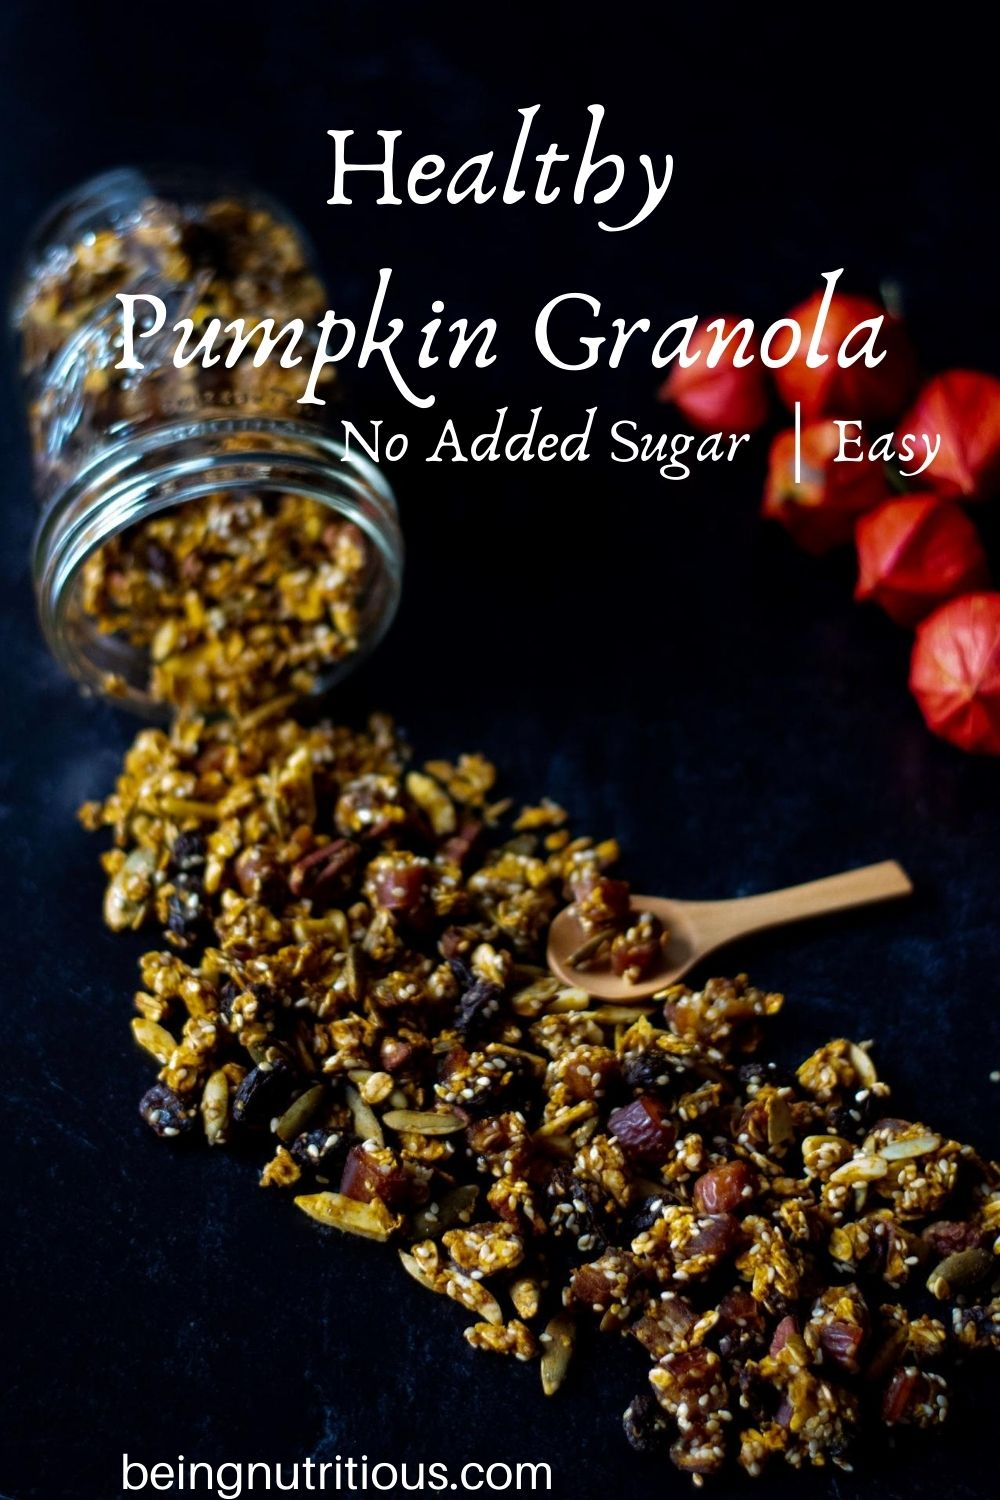 Granola spilling out of a Mason jar on a black background with text overlay: Heart Healthy Pumpkin Granola, no added sugar, easy.